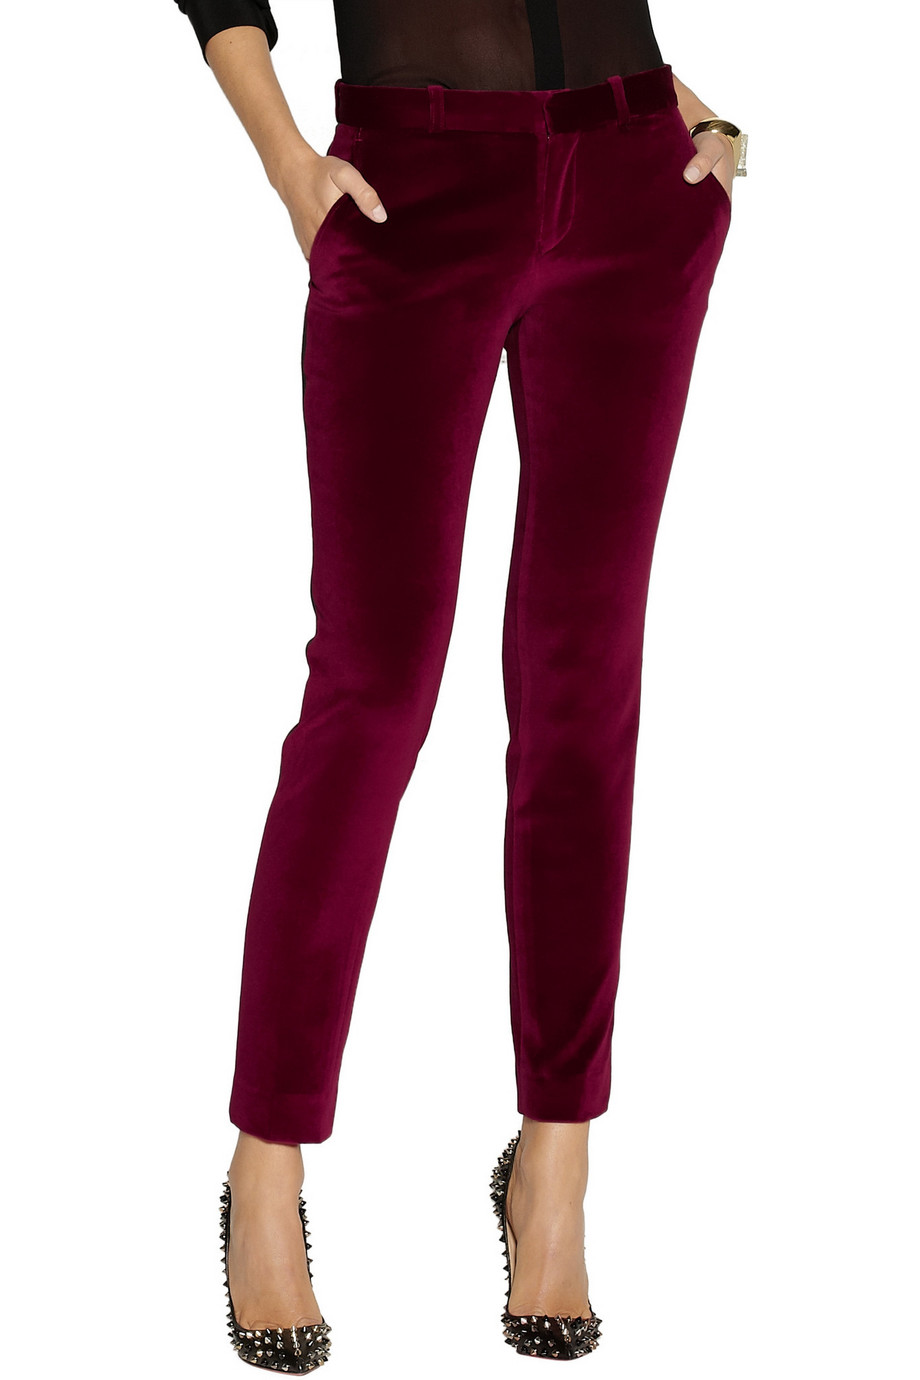 EACH X OTHER Satin-trimmed Velvet Tuxedo Pants | Fancy Friday - Fancy Pants Holiday Pieces